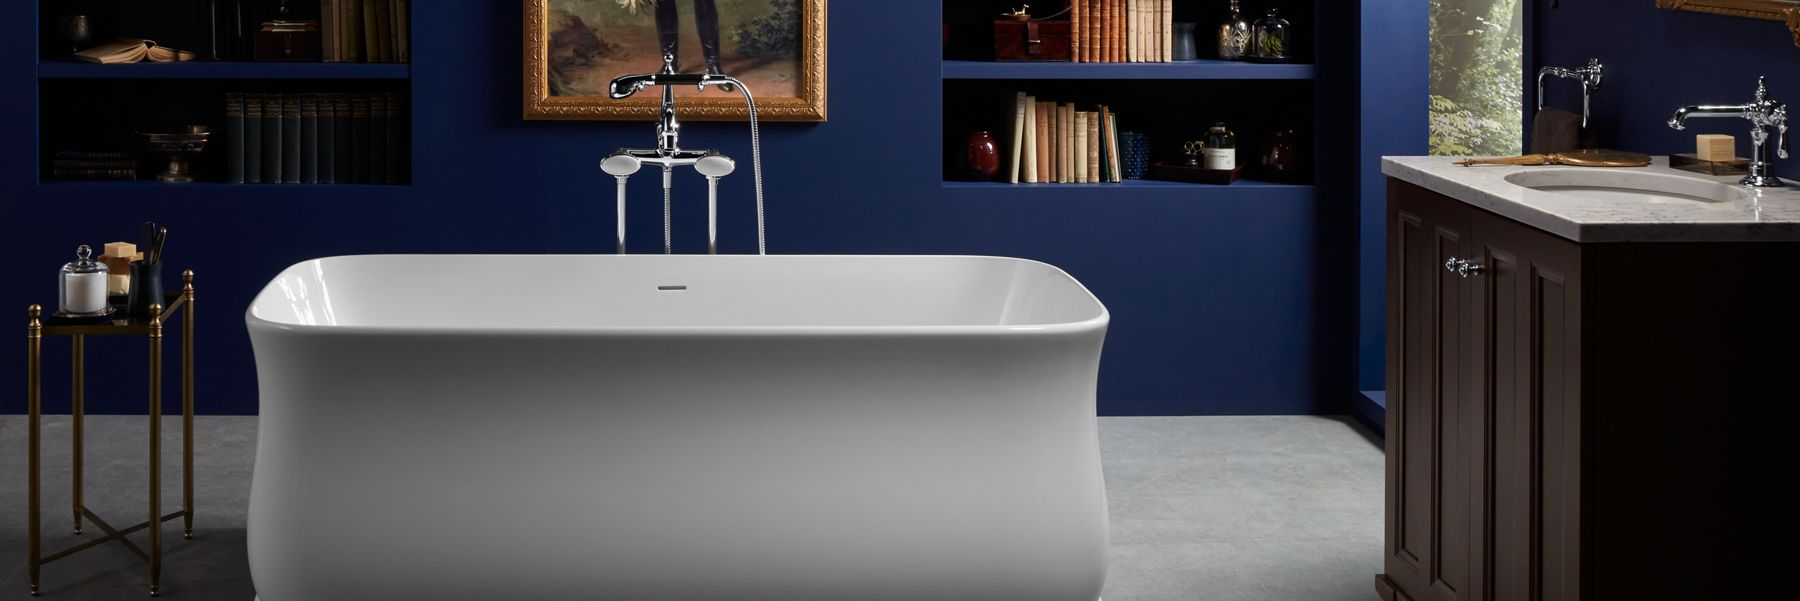 Freestanding Baths | KOHLER